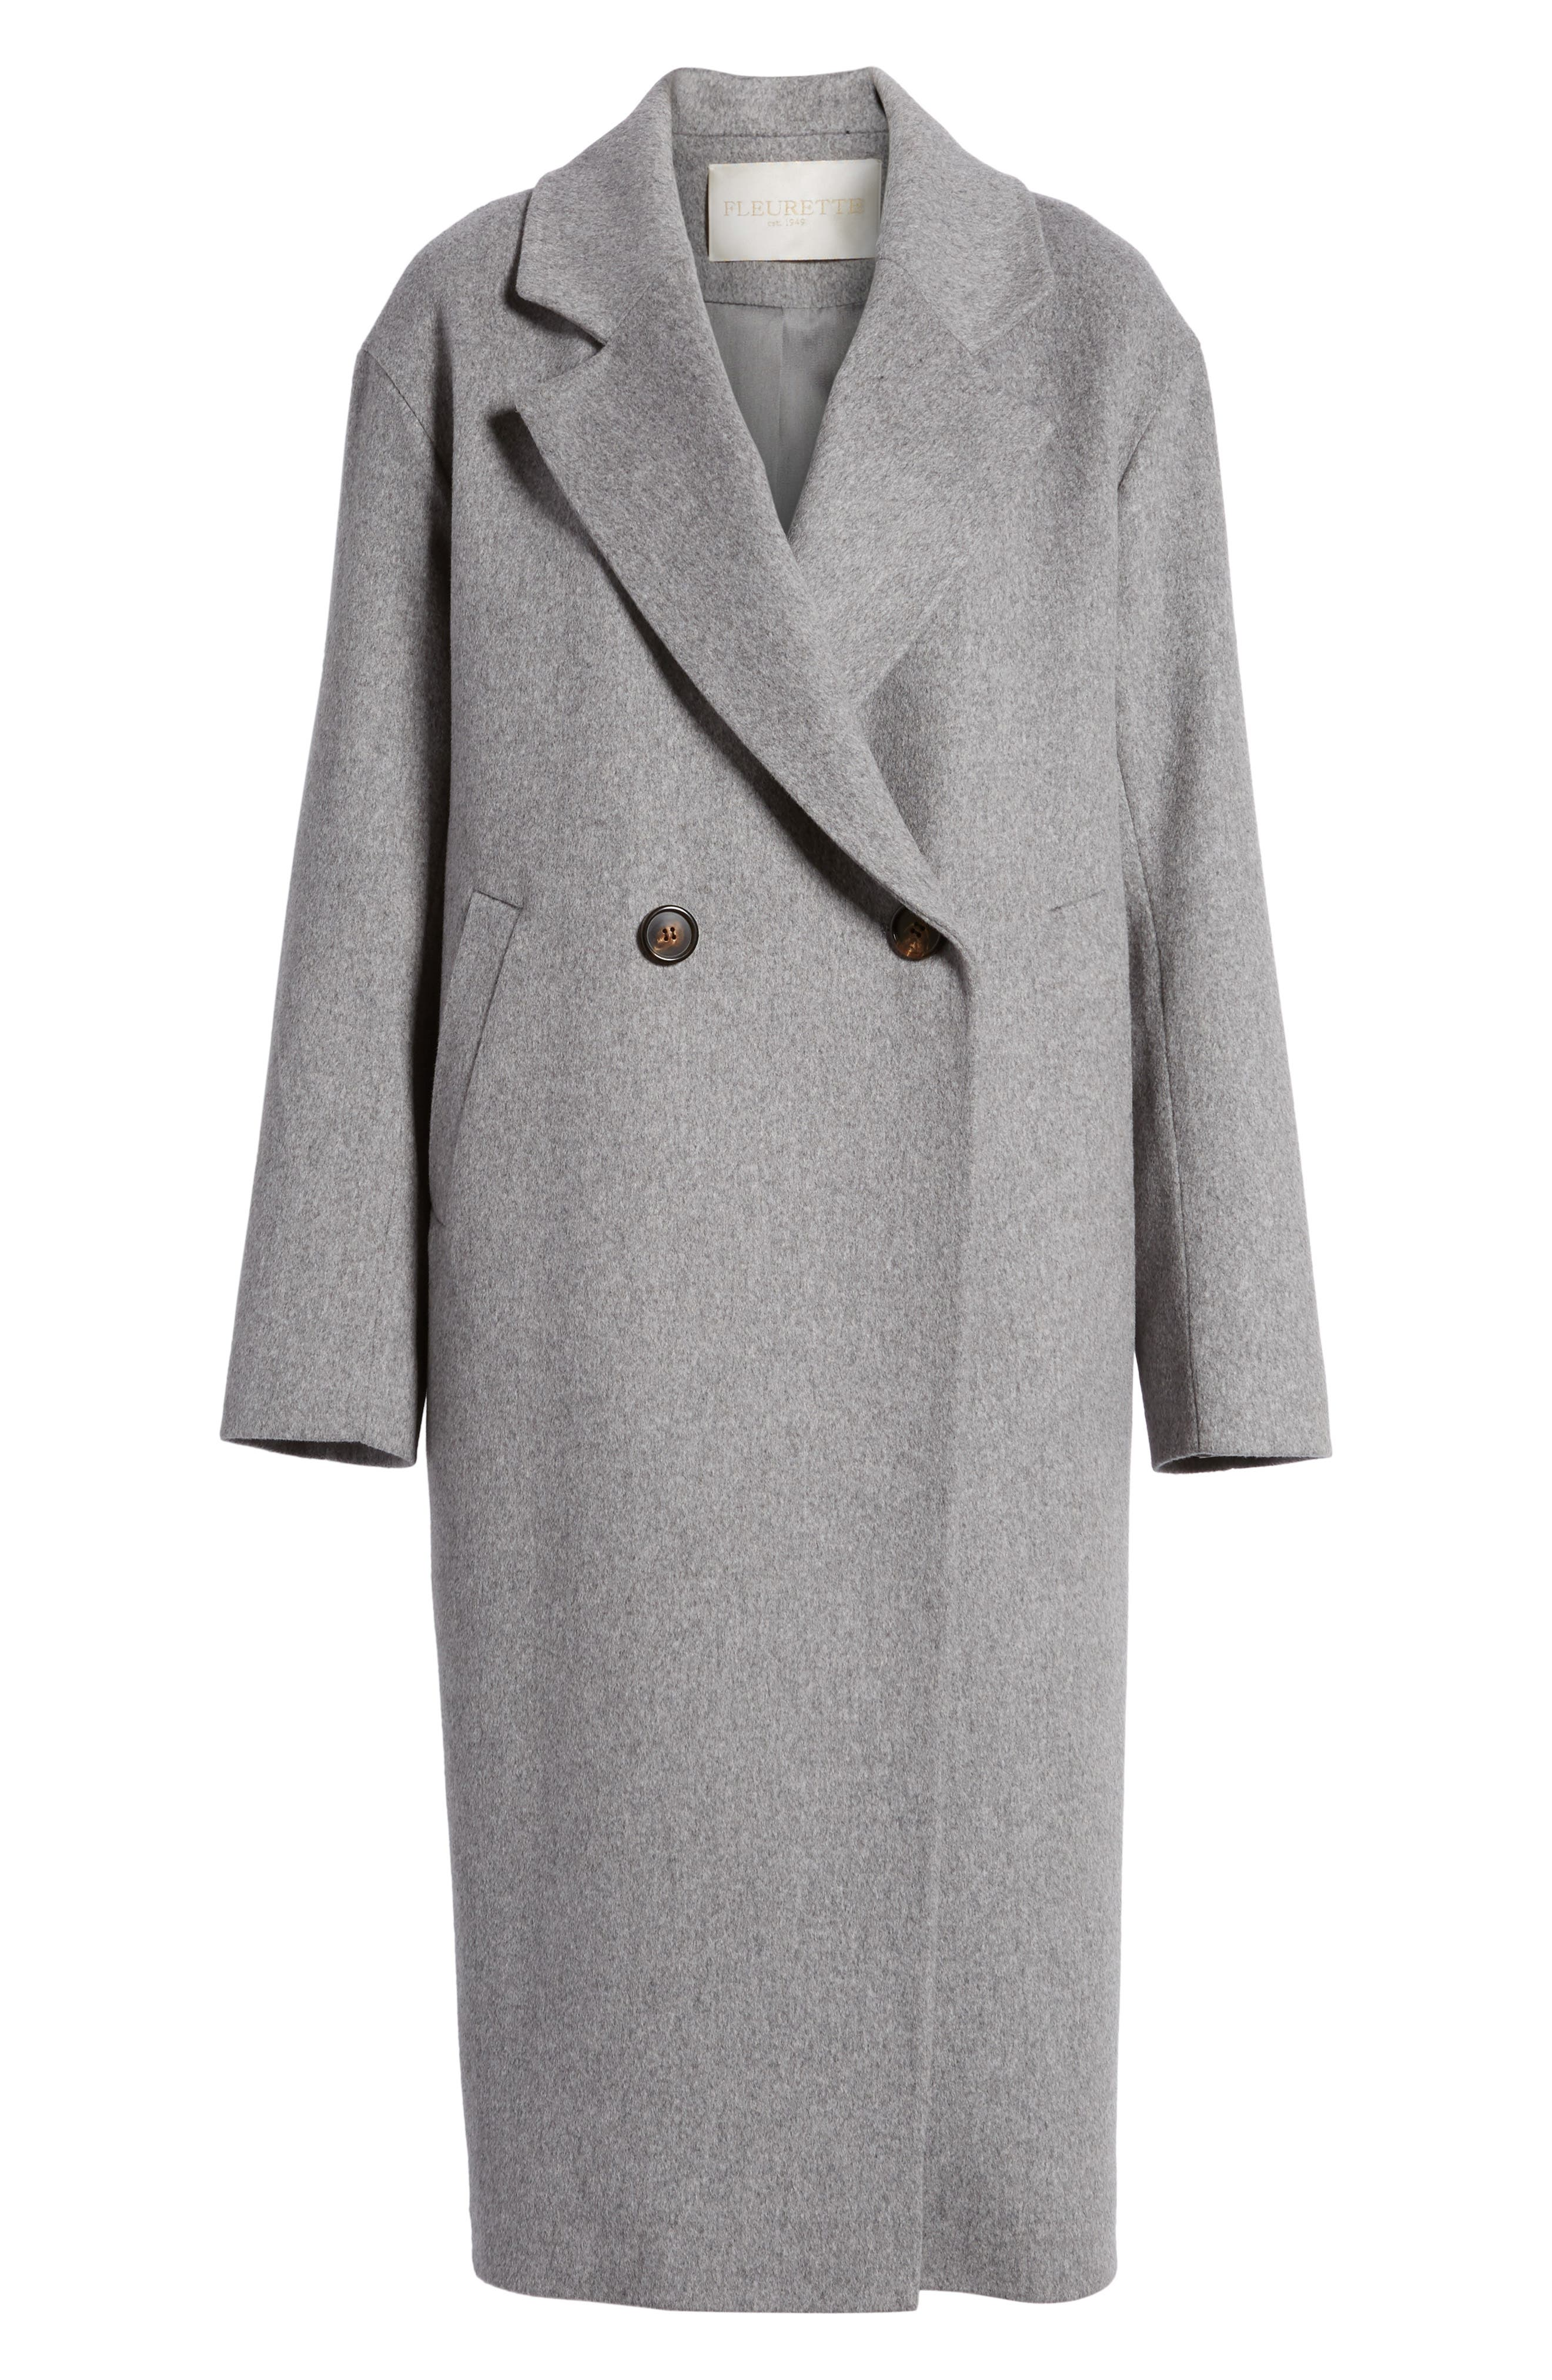 45 Loro Piana Wool Coat,                             Alternate thumbnail 5, color,                             080